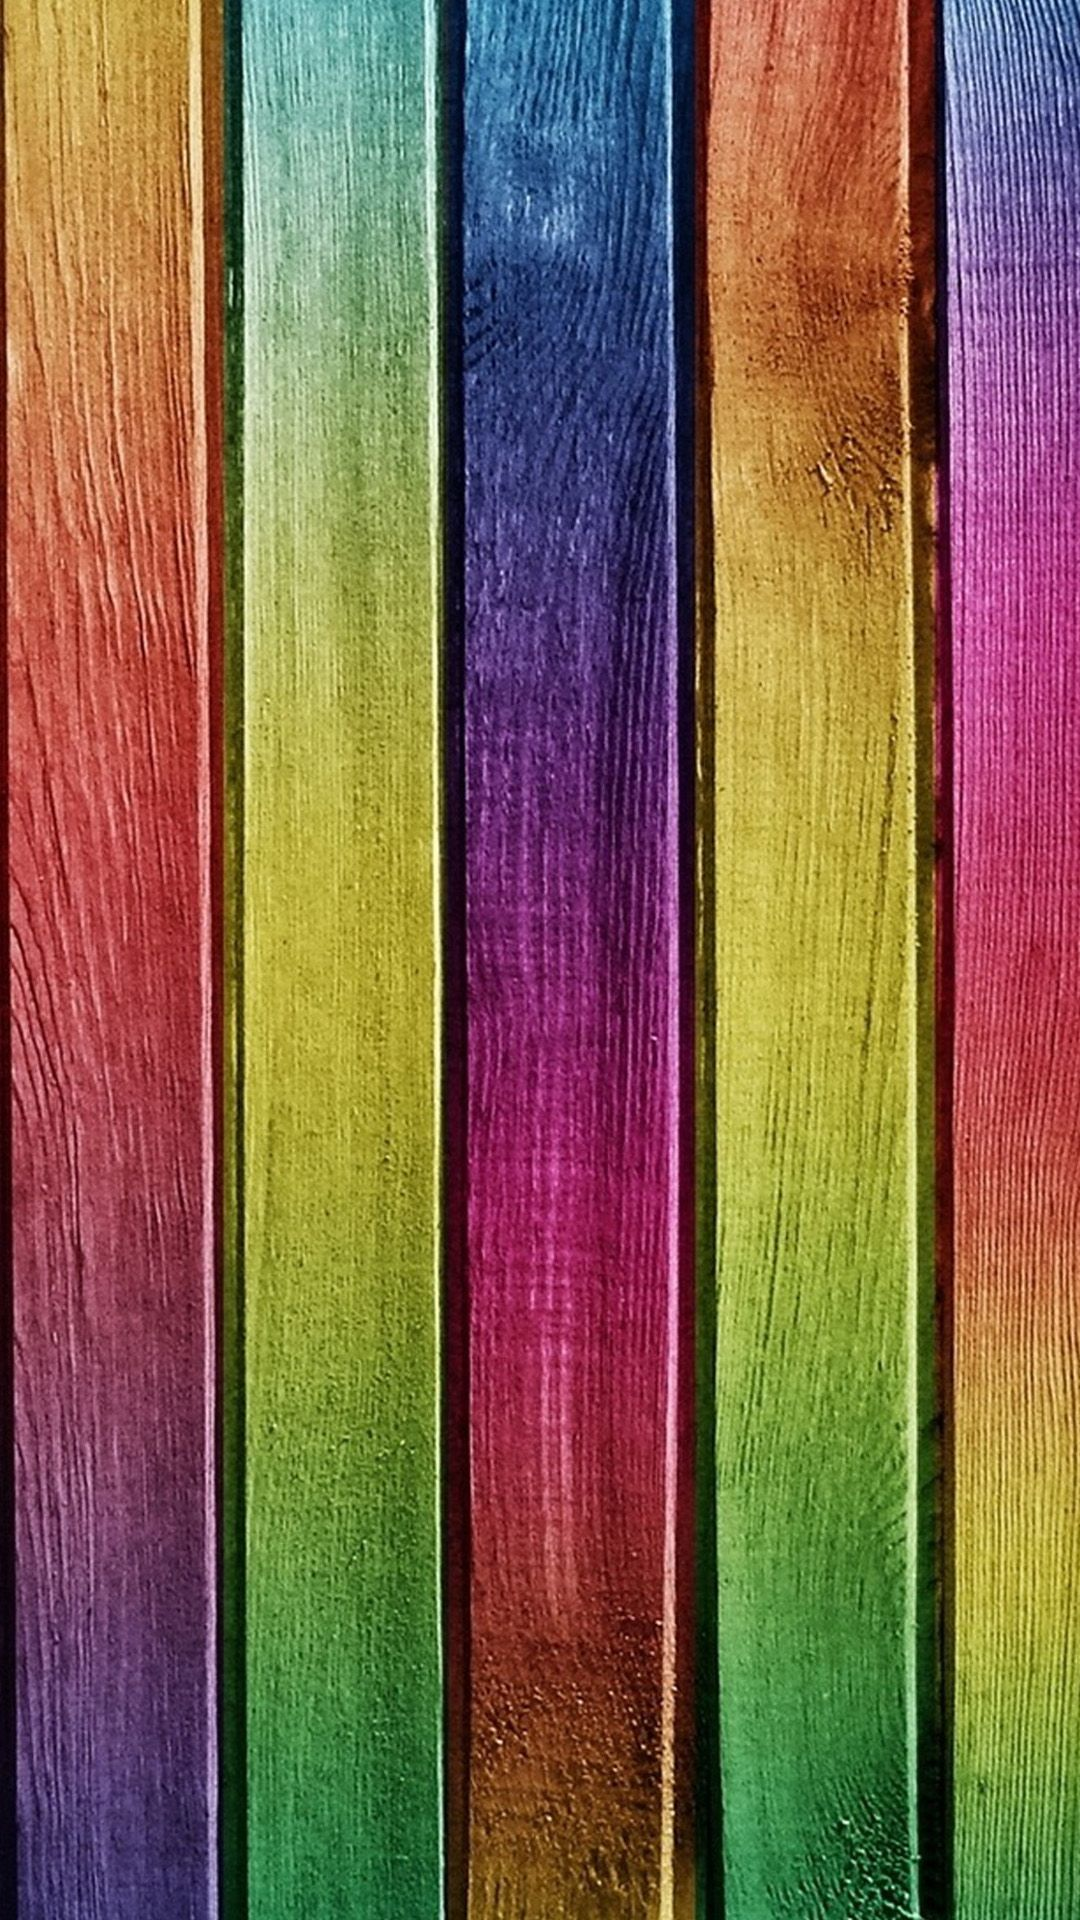 How to use scrapbook on galaxy s5 - Samsung Galaxy S5 Wallpapers Waoweo Com